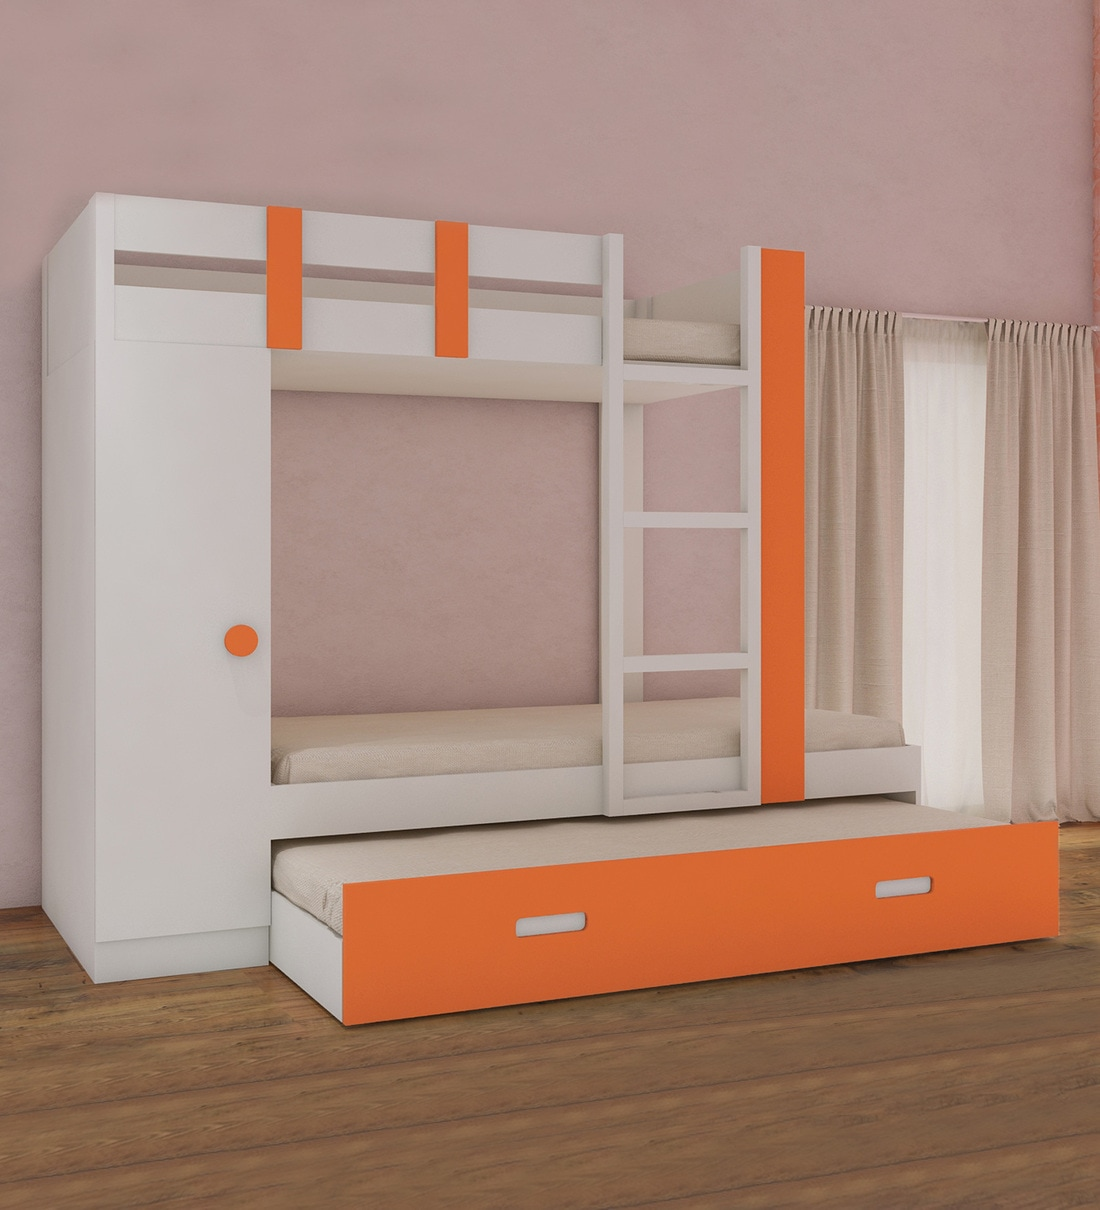 Buy Evita Twin Bunk Bed With Trundle Pullout Cum Wardrobe In Light Orange Colour By Adona Online Trundle Bunk Beds Bunk Beds Kids Furniture Pepperfry Product